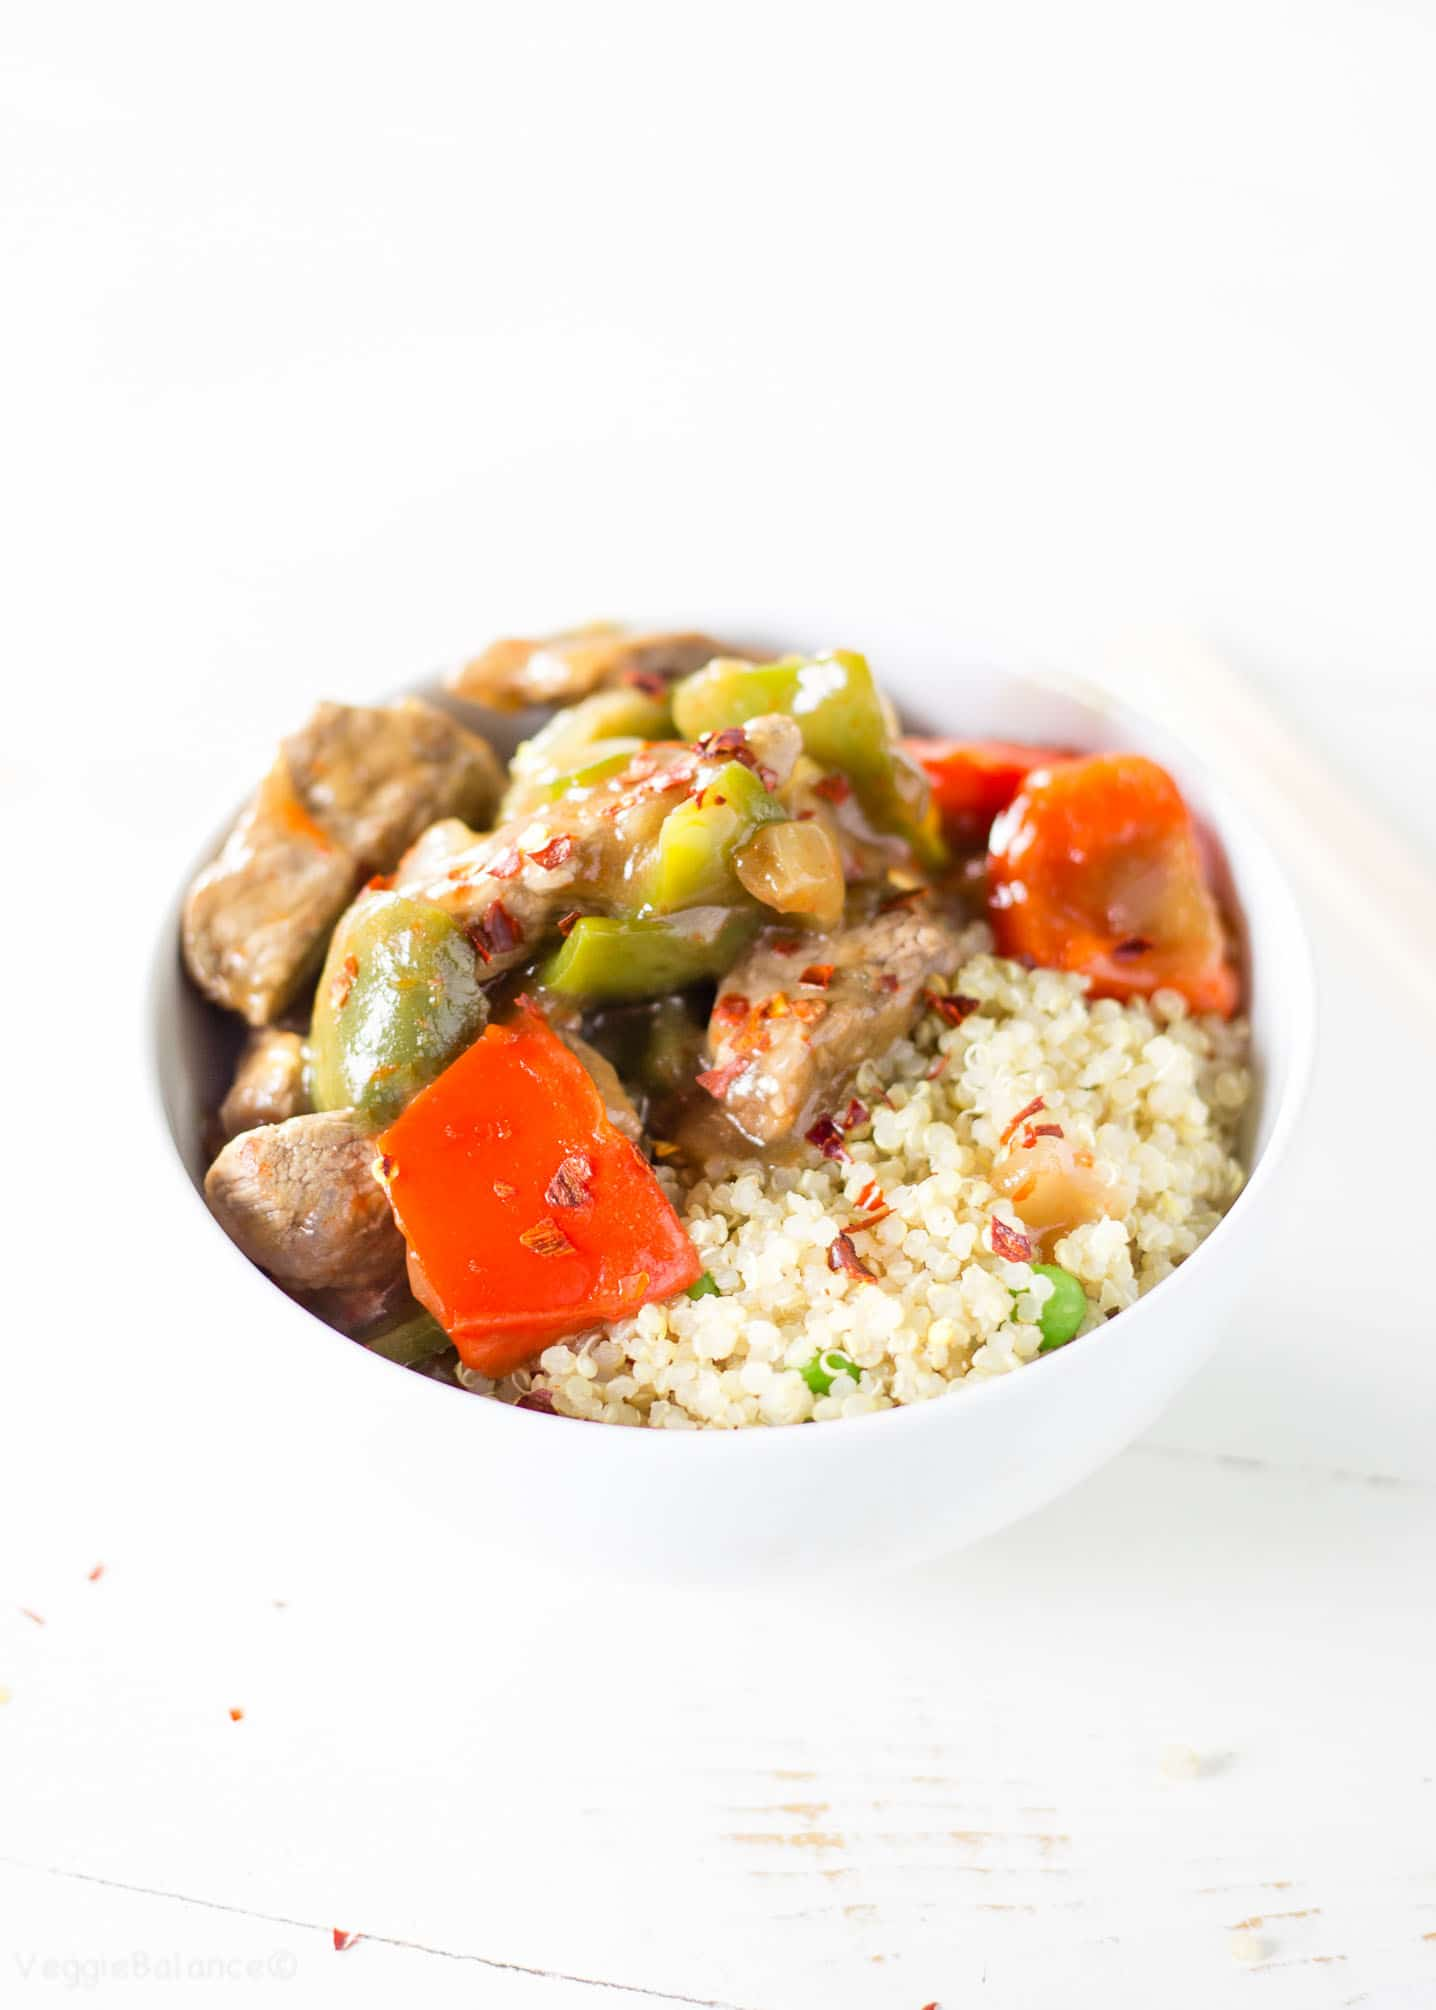 Chinese Pepper Steak over rice